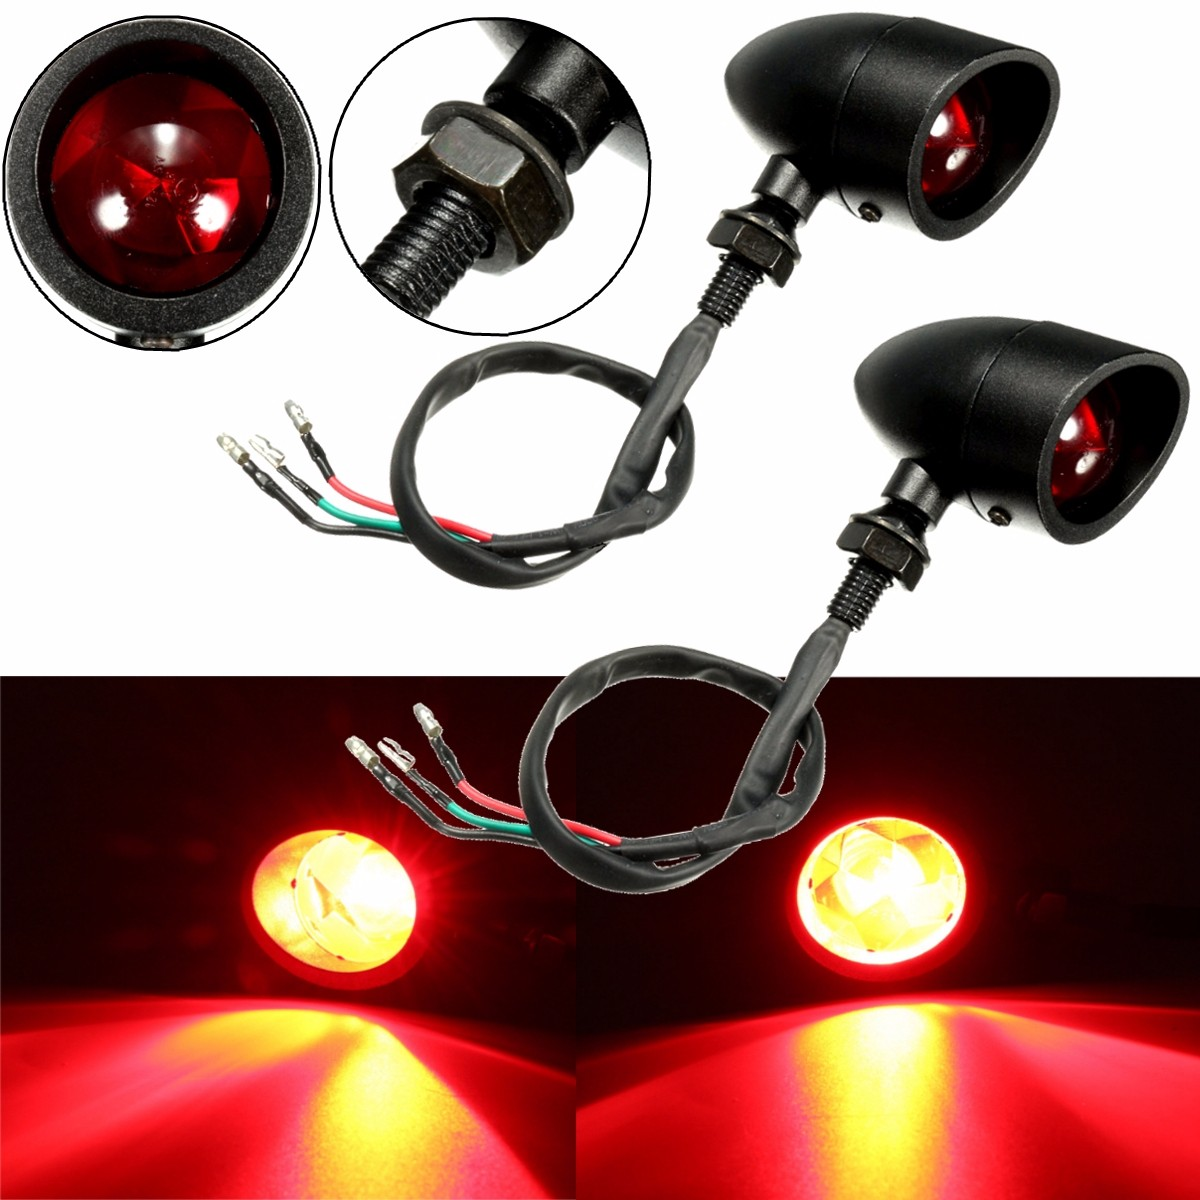 Led Indicator Lights For Motorcycles